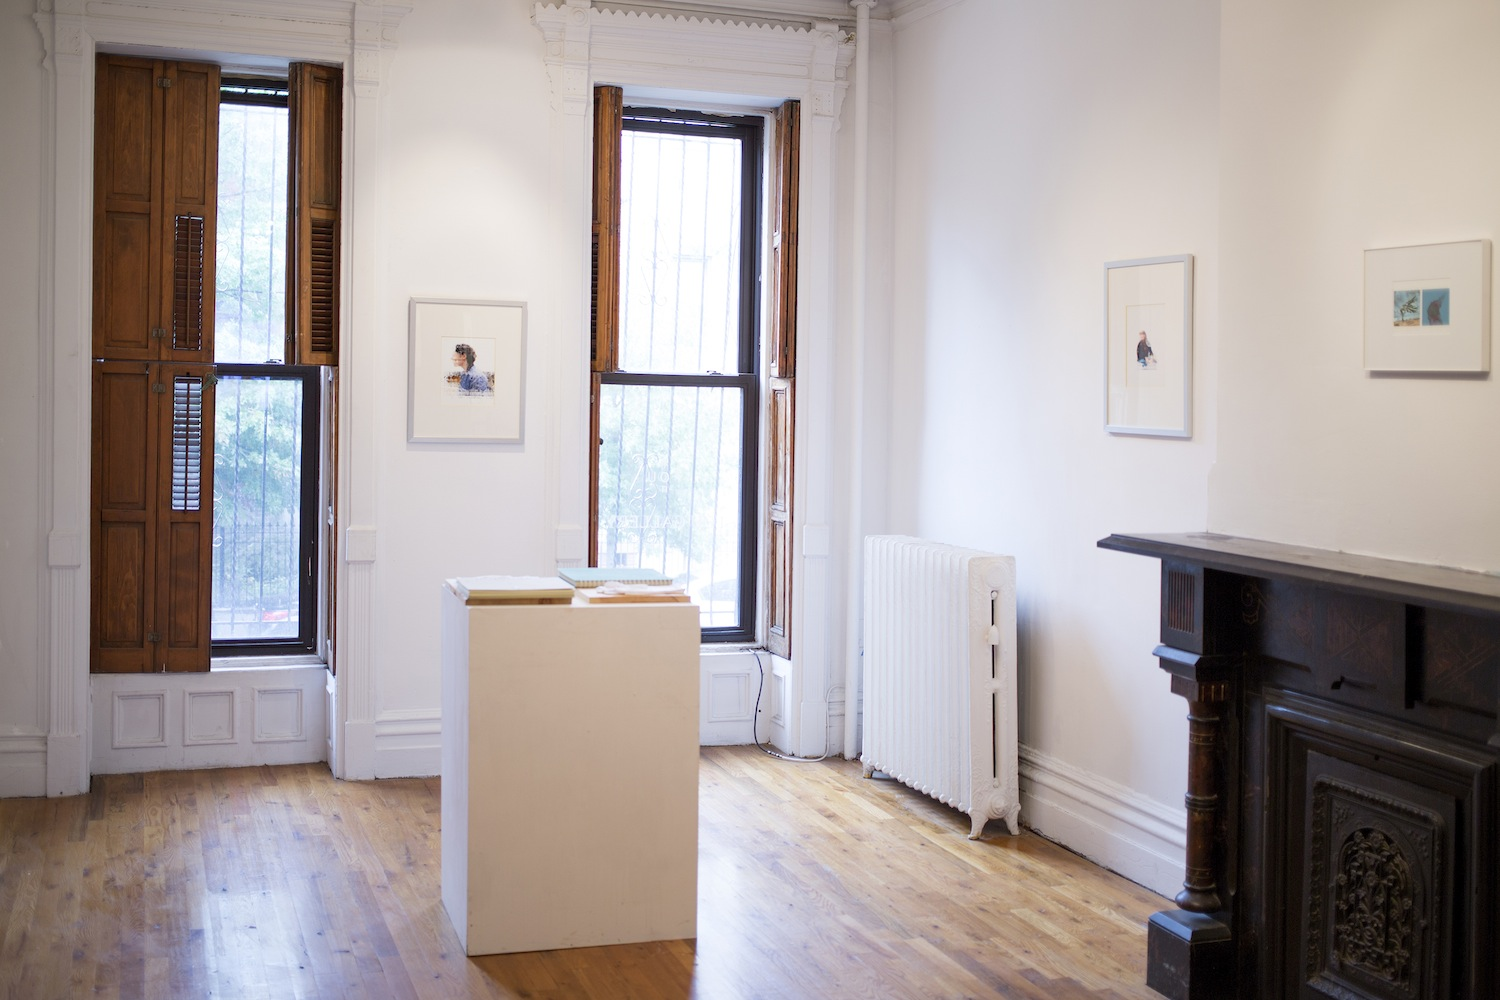 Liu Chang: Code is Beautiful Installation View, photo by Miao Jing, courtesy Fou Gallery